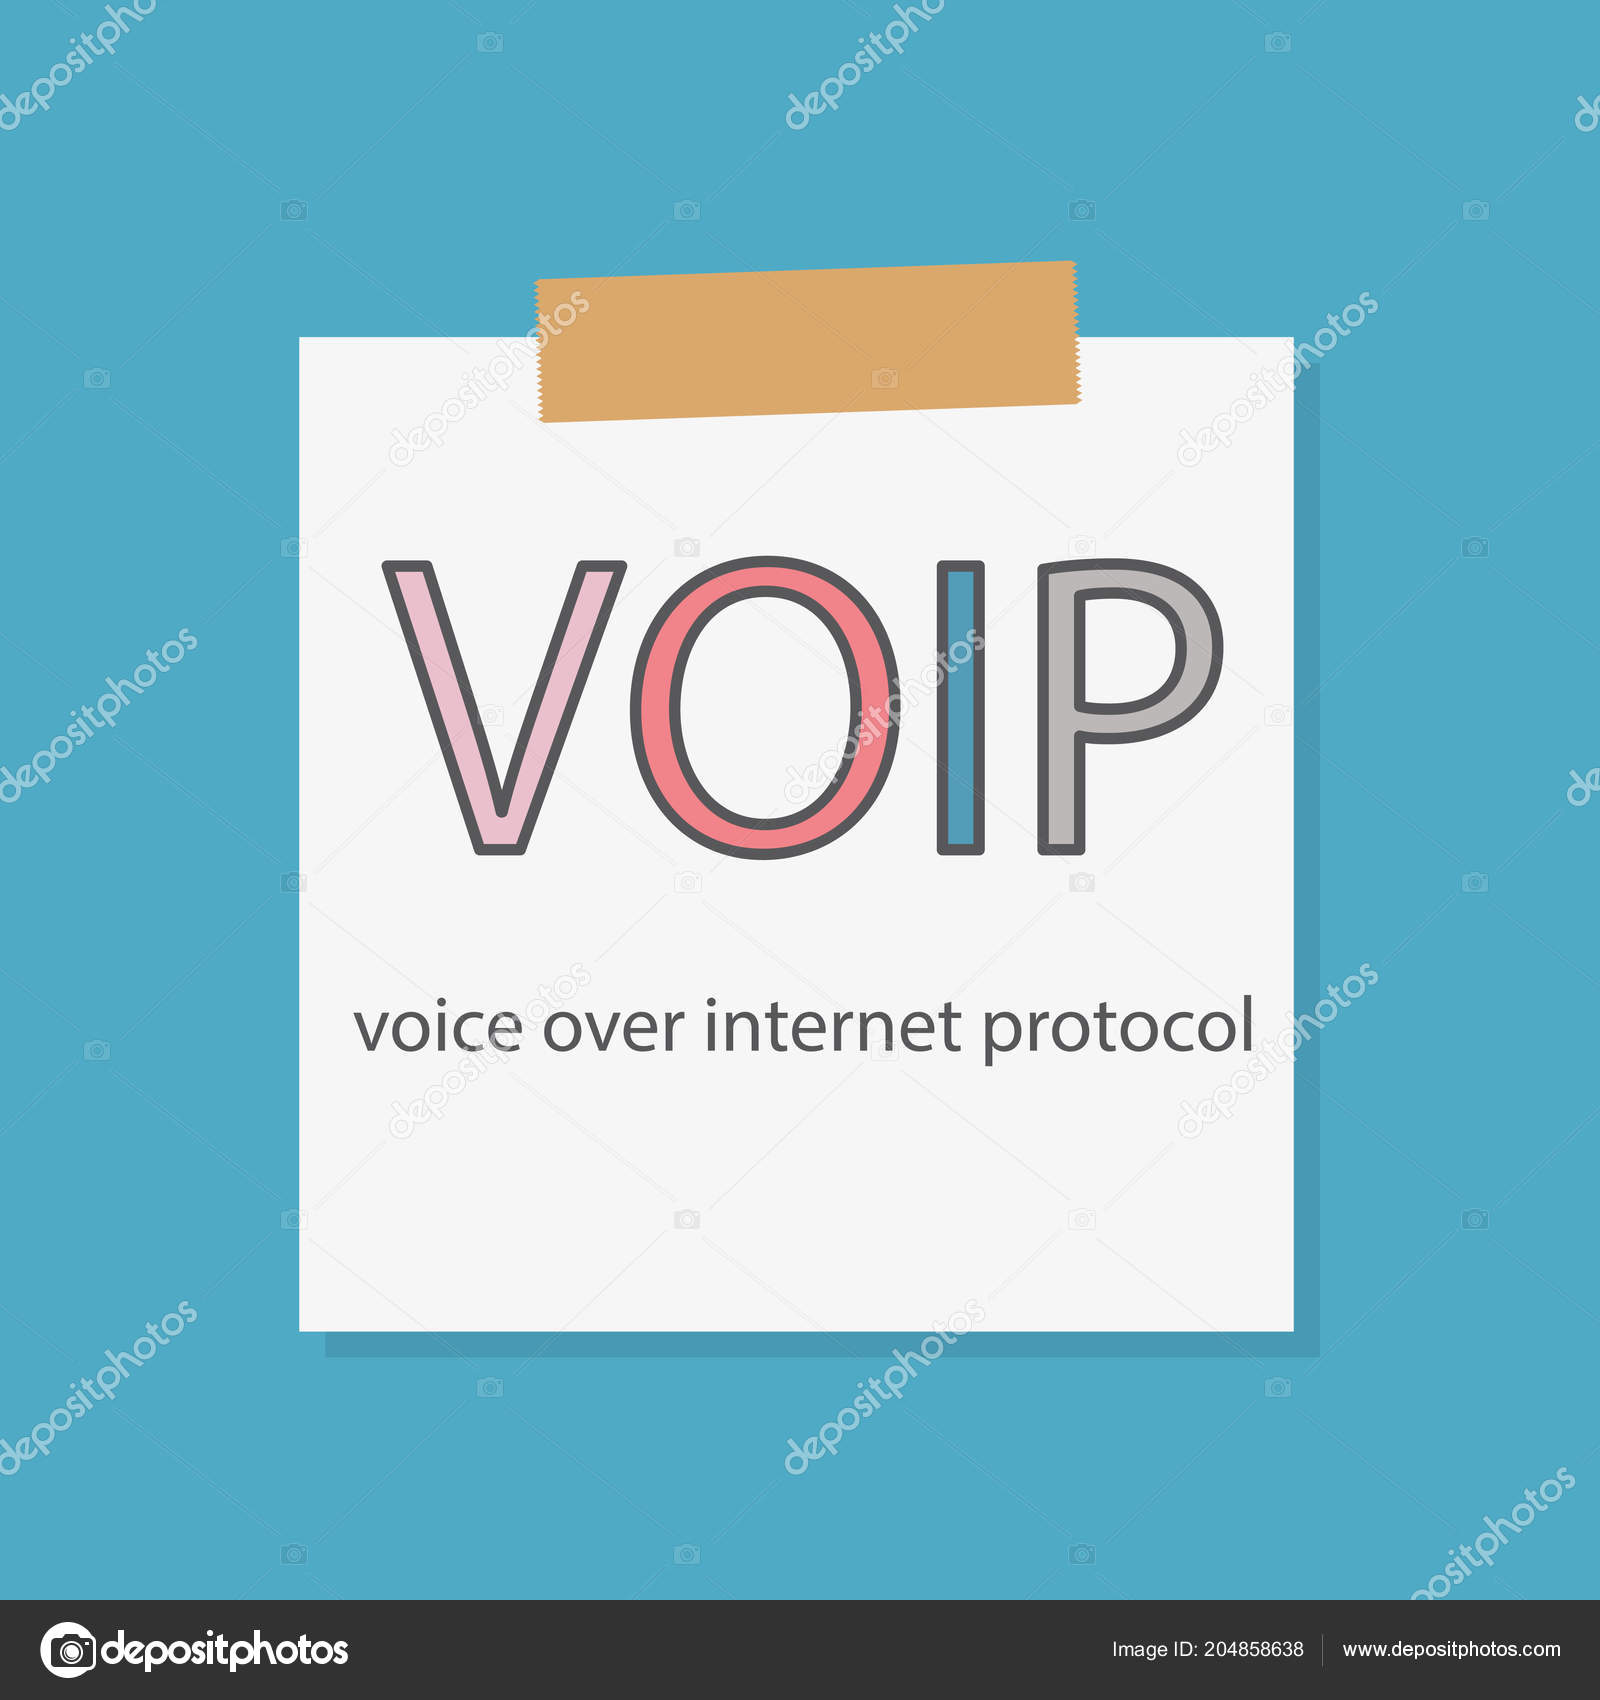 voice over internet protocol term paper International journal of computer applications (0975 - 8887) volume 139 - no2, april 2016 16 a survey paper on voice over internet protocol (voip) urjashee shaw.